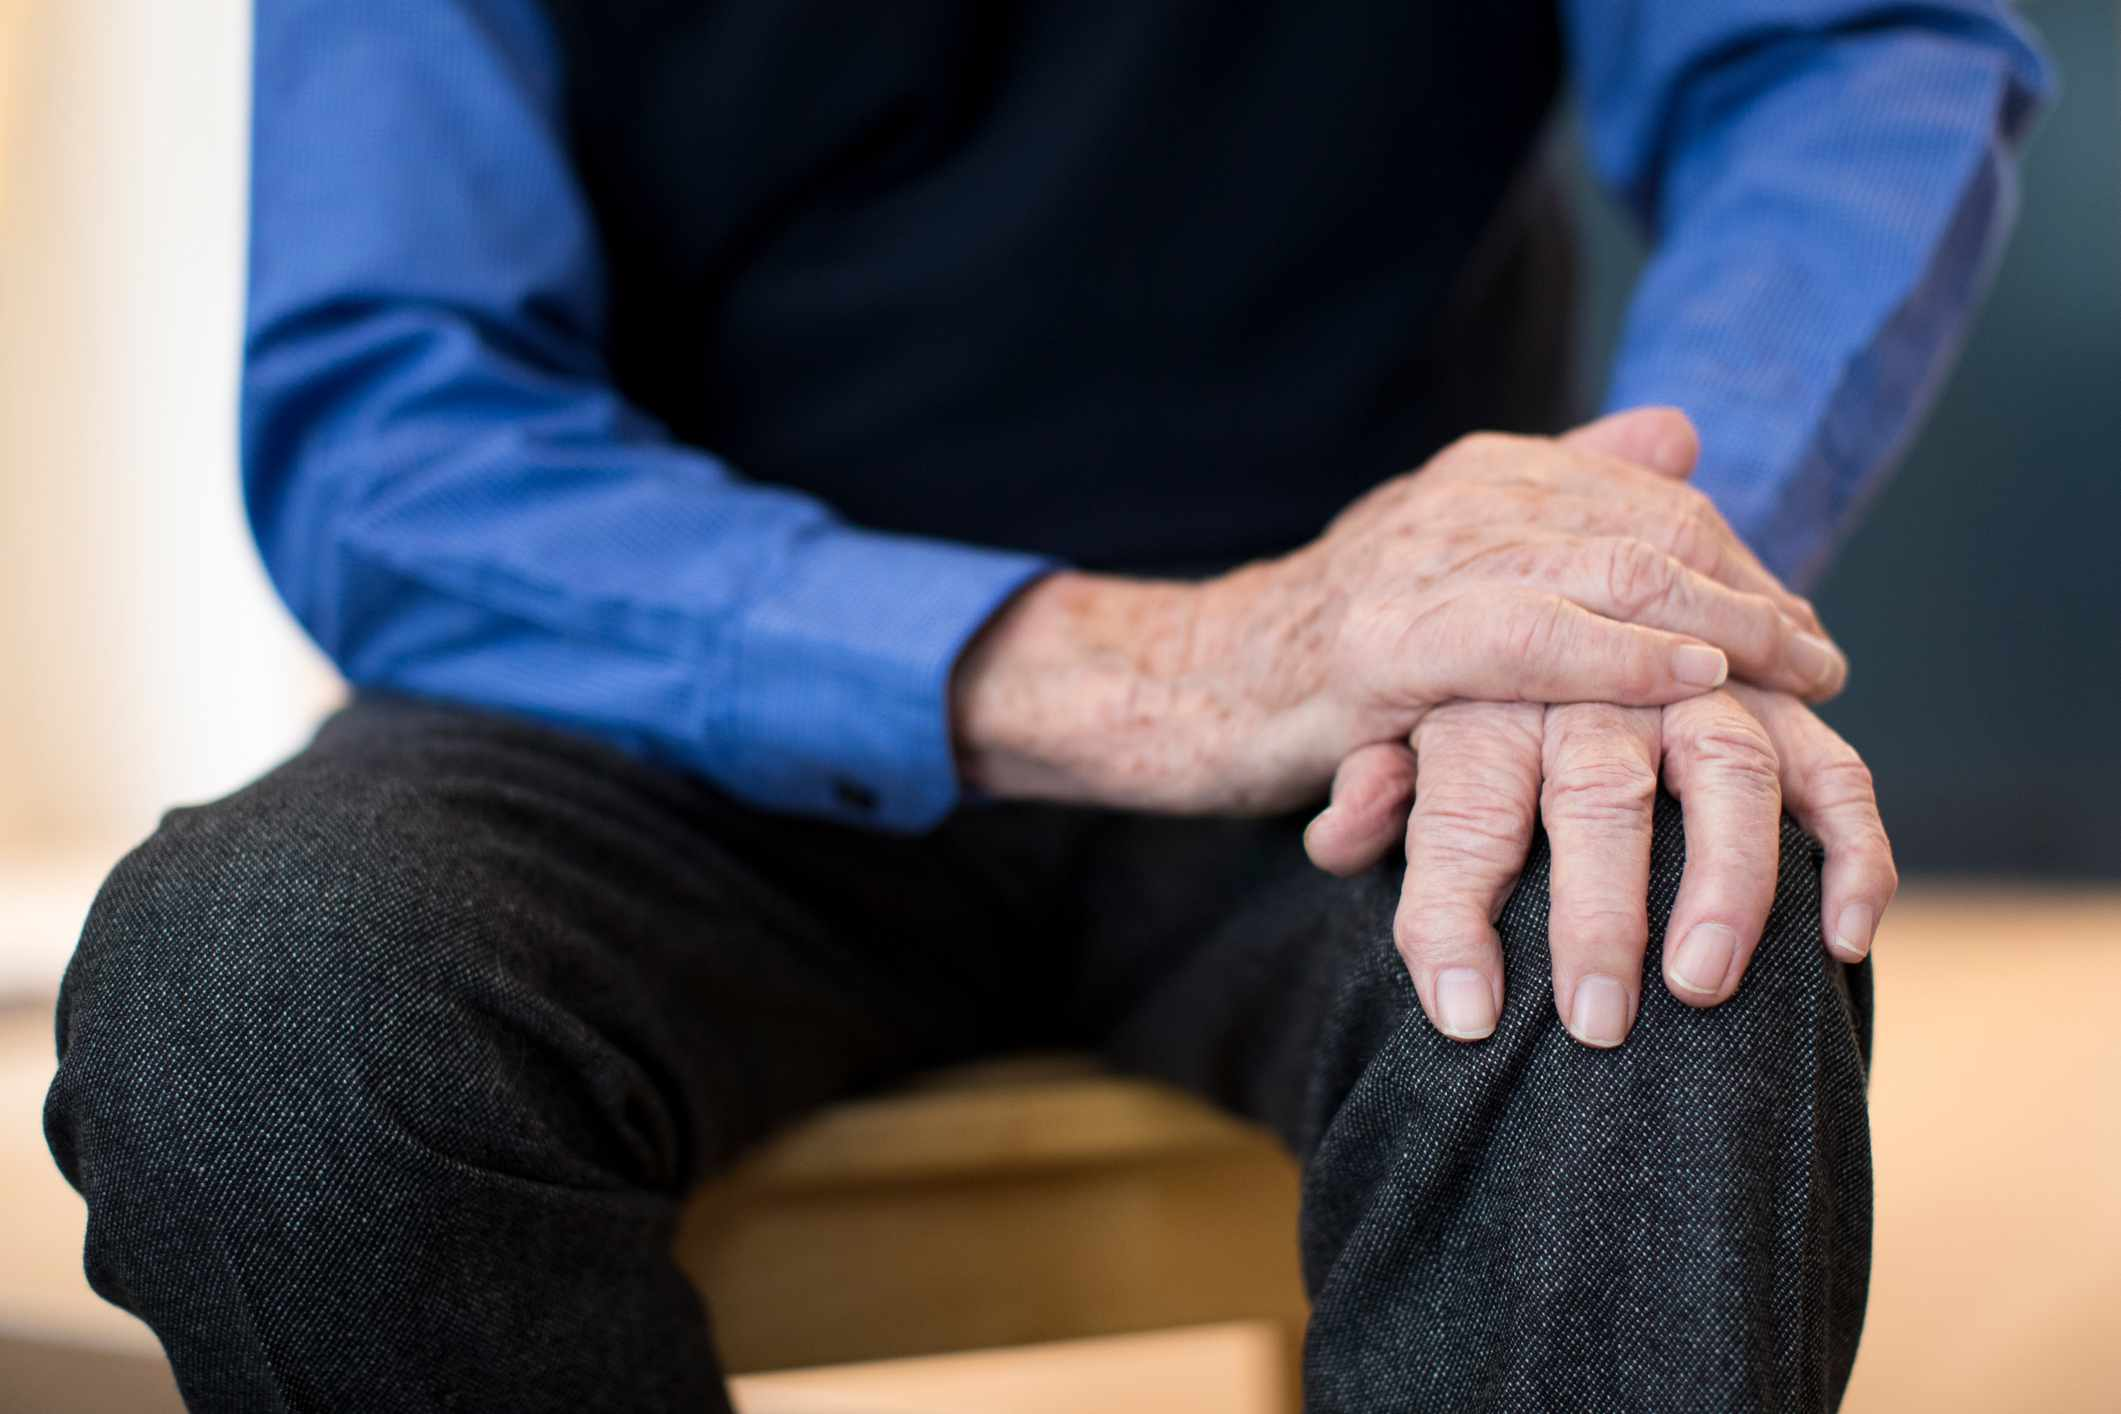 A man with Parkinson's Disease holding his knee